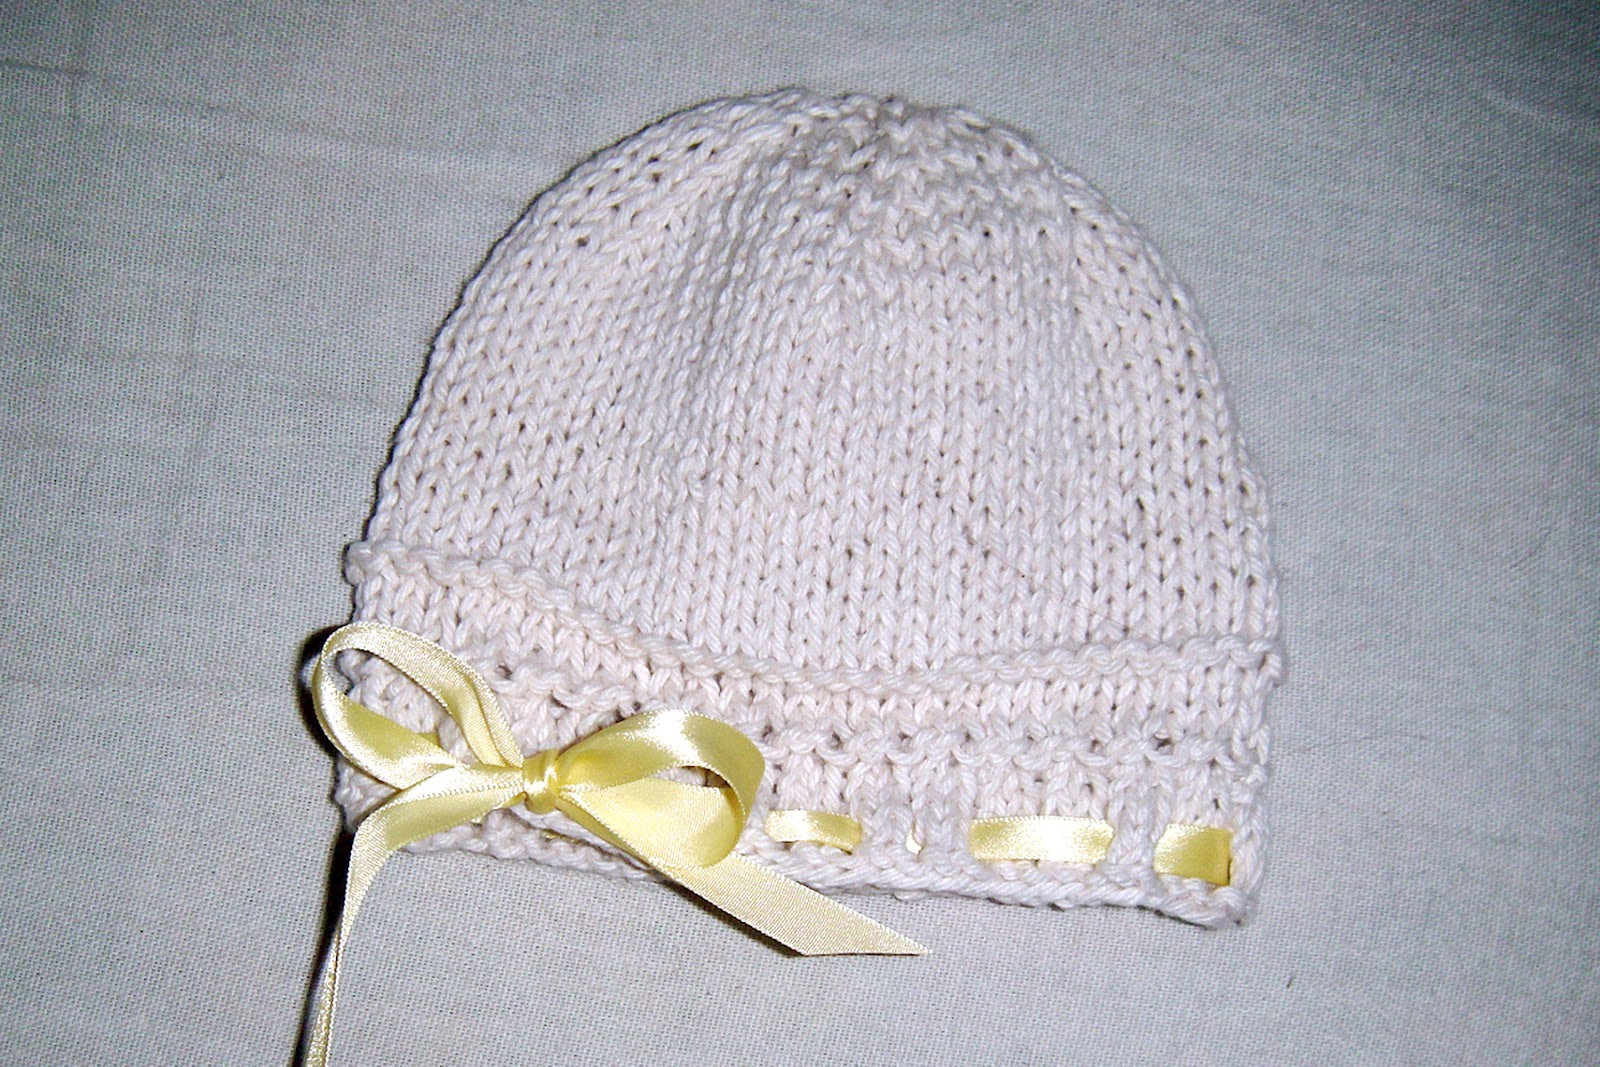 Baby Knitted Hat Patterns On Circular Needles : Knitting Patterns For Hats Without Circular Needles